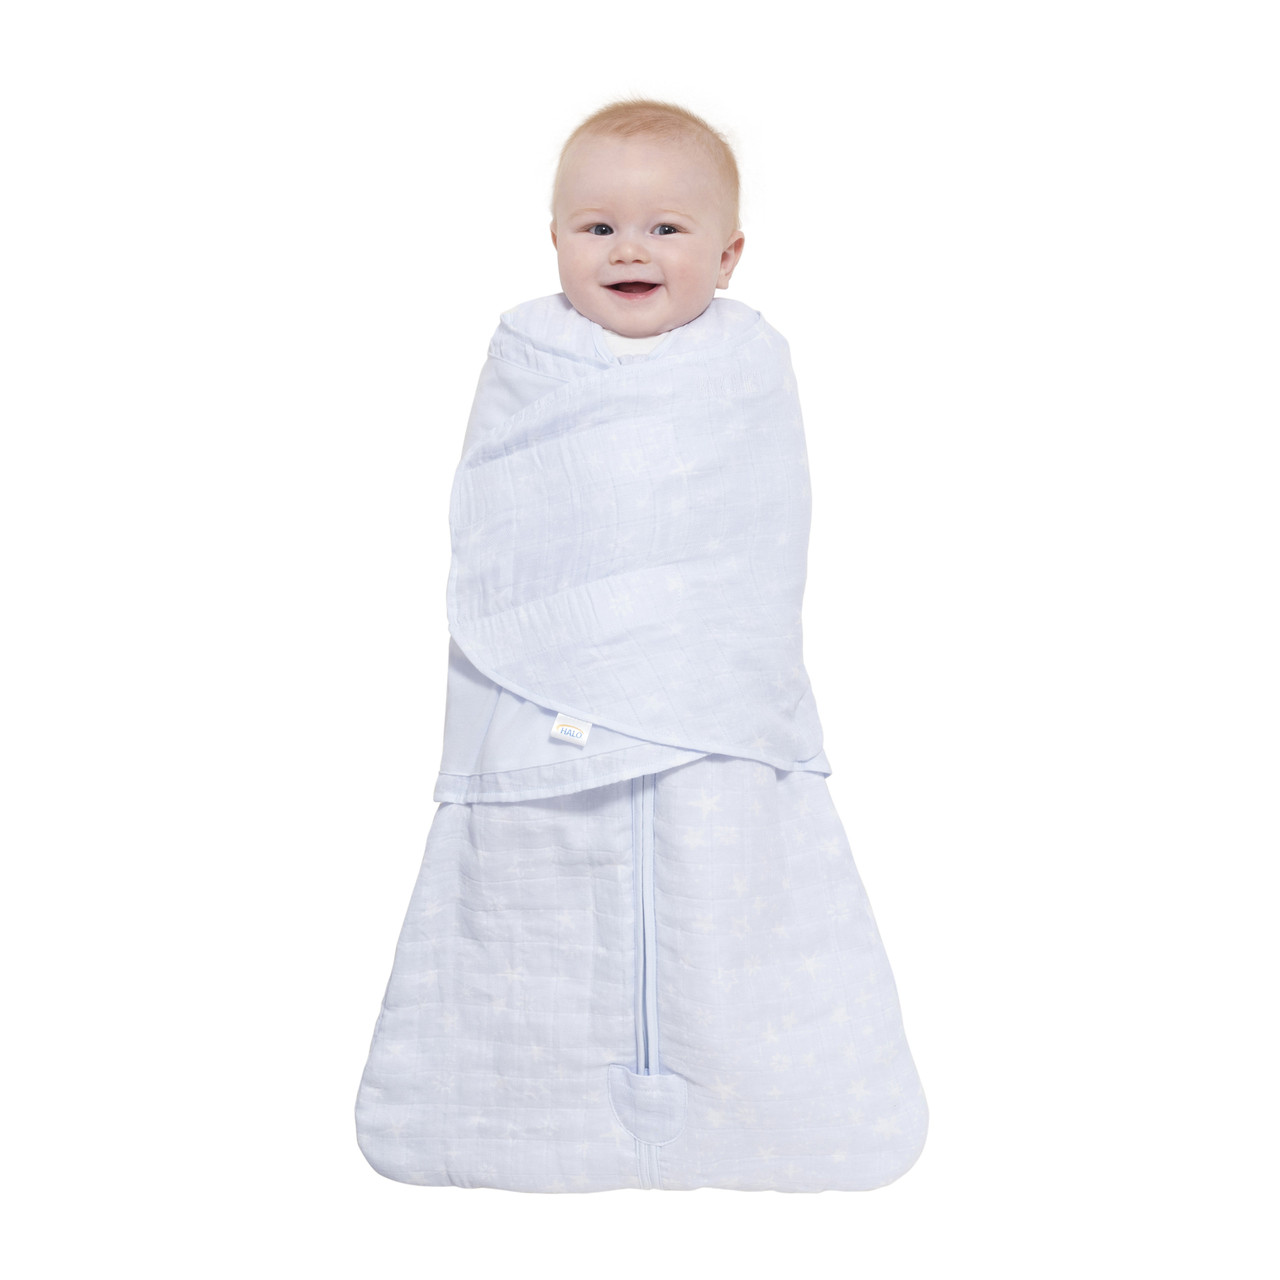 HALO® SleepSack® swaddle platinum quilted muslinPale Blue Constellation e9838a273